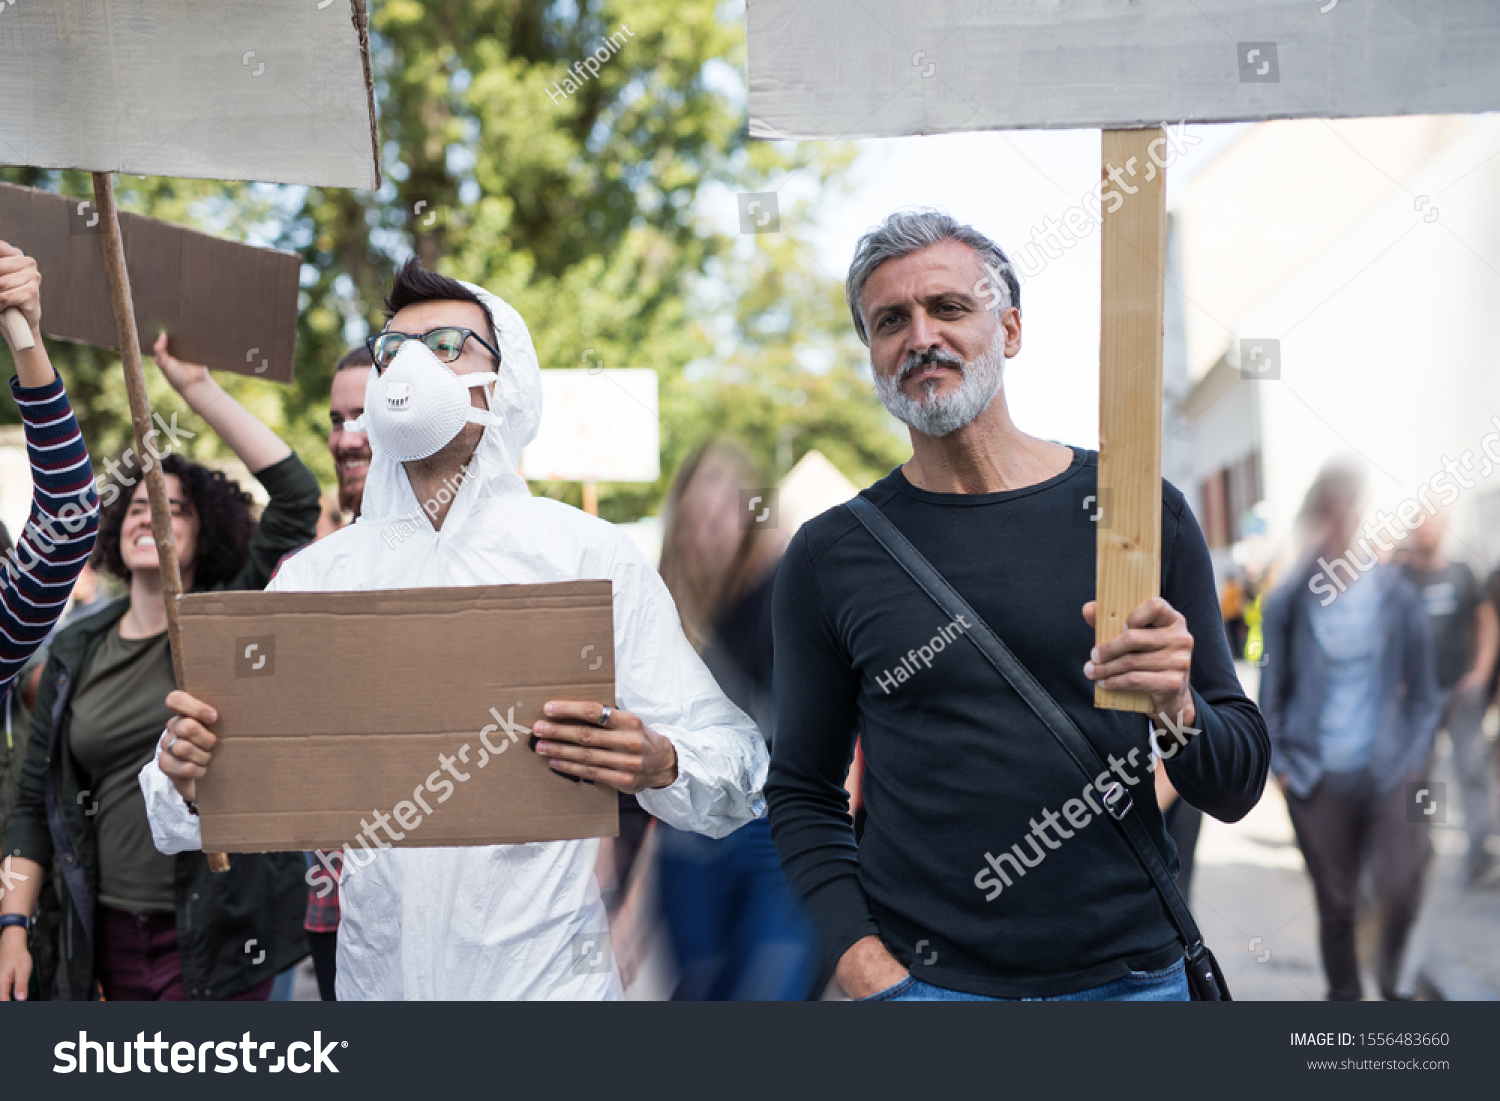 People with placards and protective suit on global strike for climate change. #1556483660